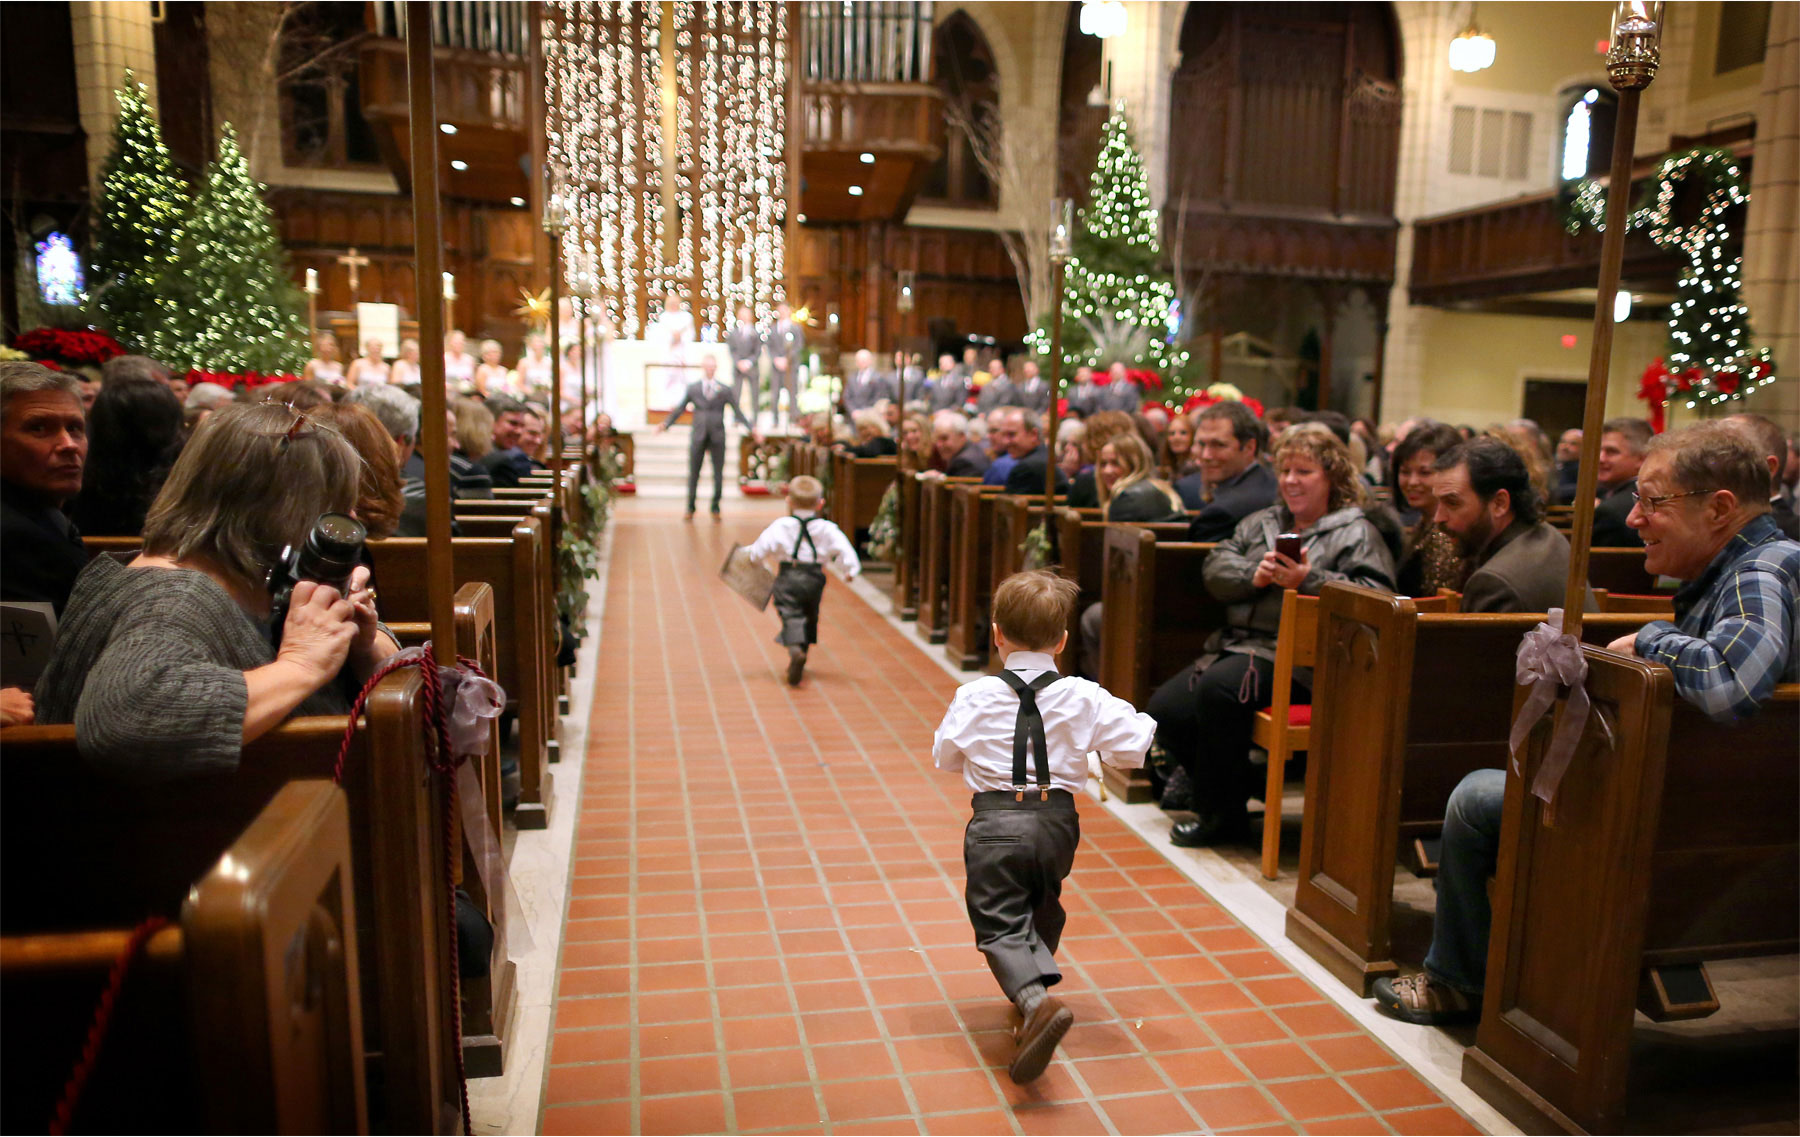 11-Minneapolis-Minnesota-Wedding-Photographer-by-Andrew-Vick-Photography-Winter-Central-Lutheran-Church-Ceremony-Groom-Ring-Bearer-Processional-Brittany-and-Joseph.jpg